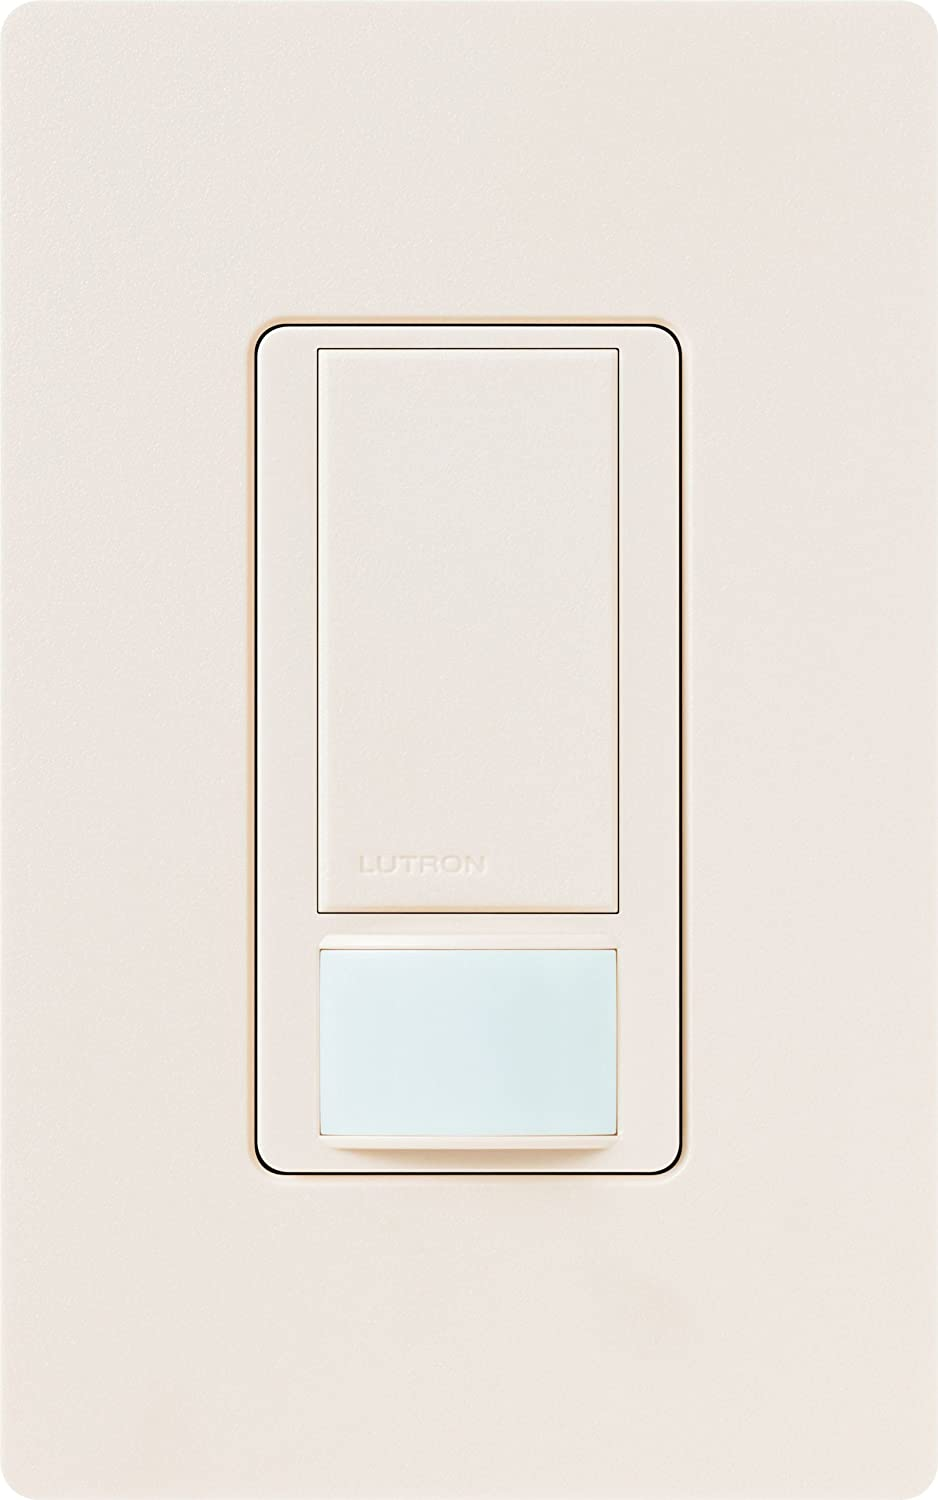 lutron ms ops5m wh maestro multi location occupancy sensing switch lutron ms ops5m wh maestro multi location occupancy sensing switch white 5 amp pipe cutters amazon